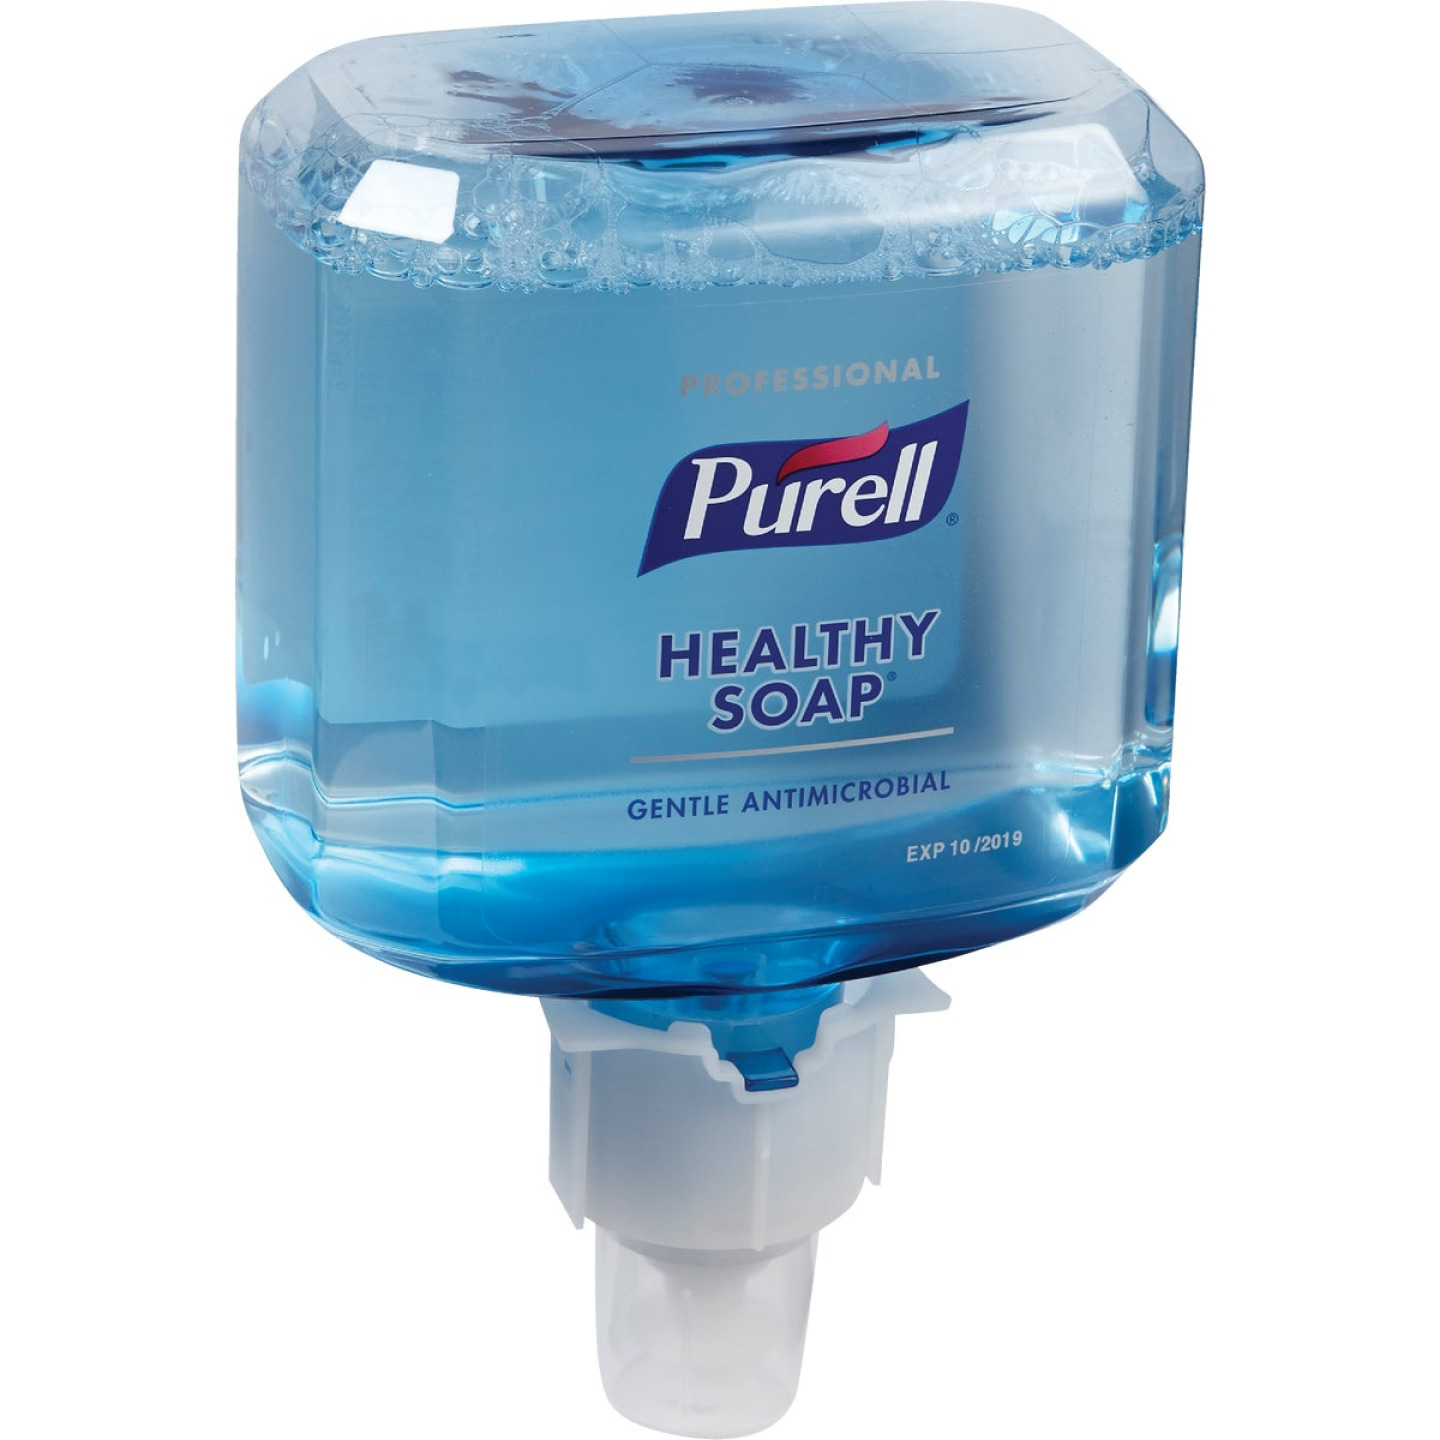 Purell ES4 1200mL Professional Healthy Soap 0.5% BAK Antimicrobial Foam Refill Image 1